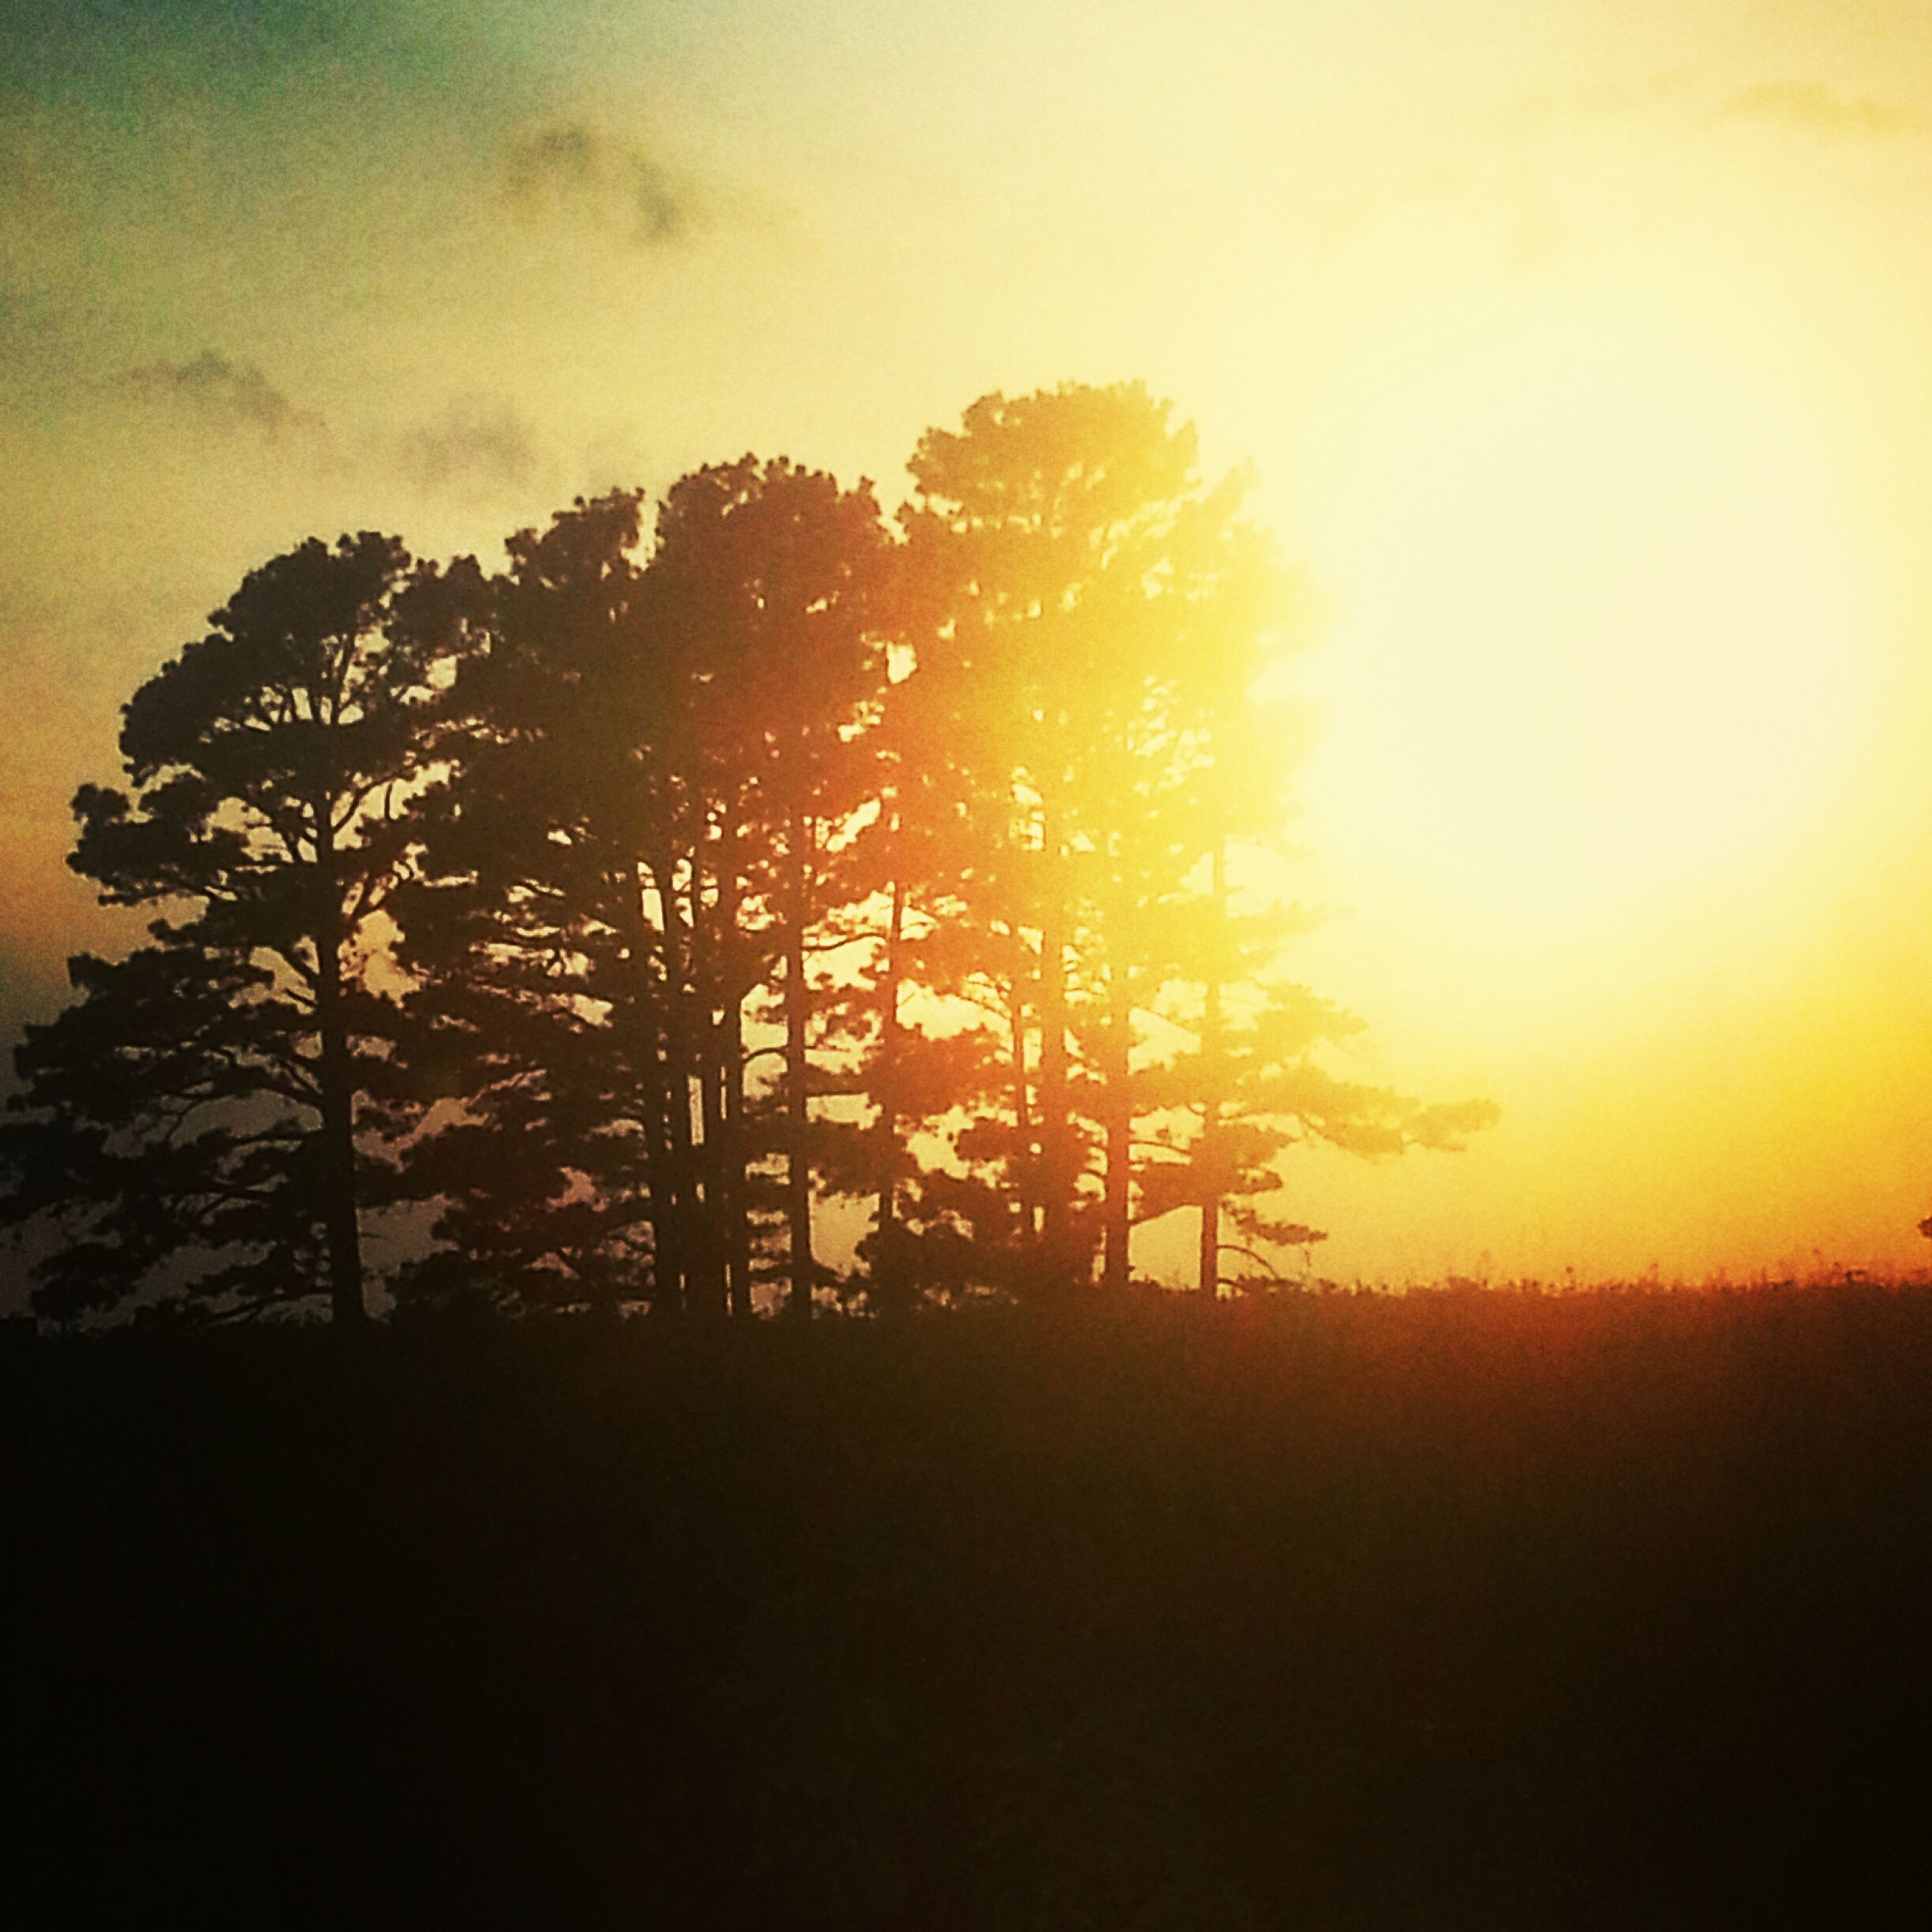 sunset, silhouette, tranquility, tranquil scene, tree, beauty in nature, scenics, landscape, orange color, field, nature, sky, growth, idyllic, outdoors, sun, no people, non-urban scene, plant, sunlight